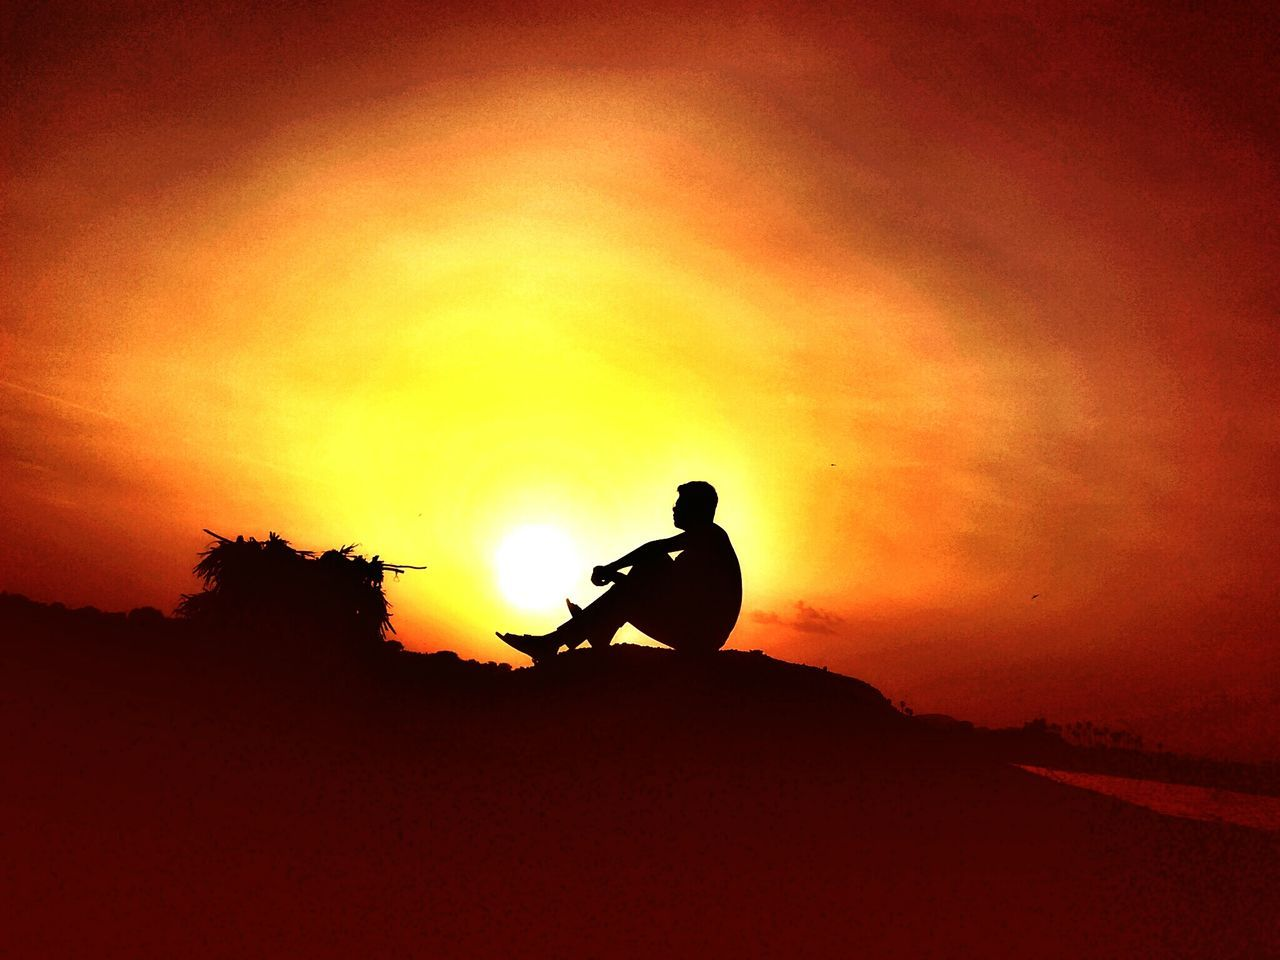 Silhouette Of Person Sitting On Rock